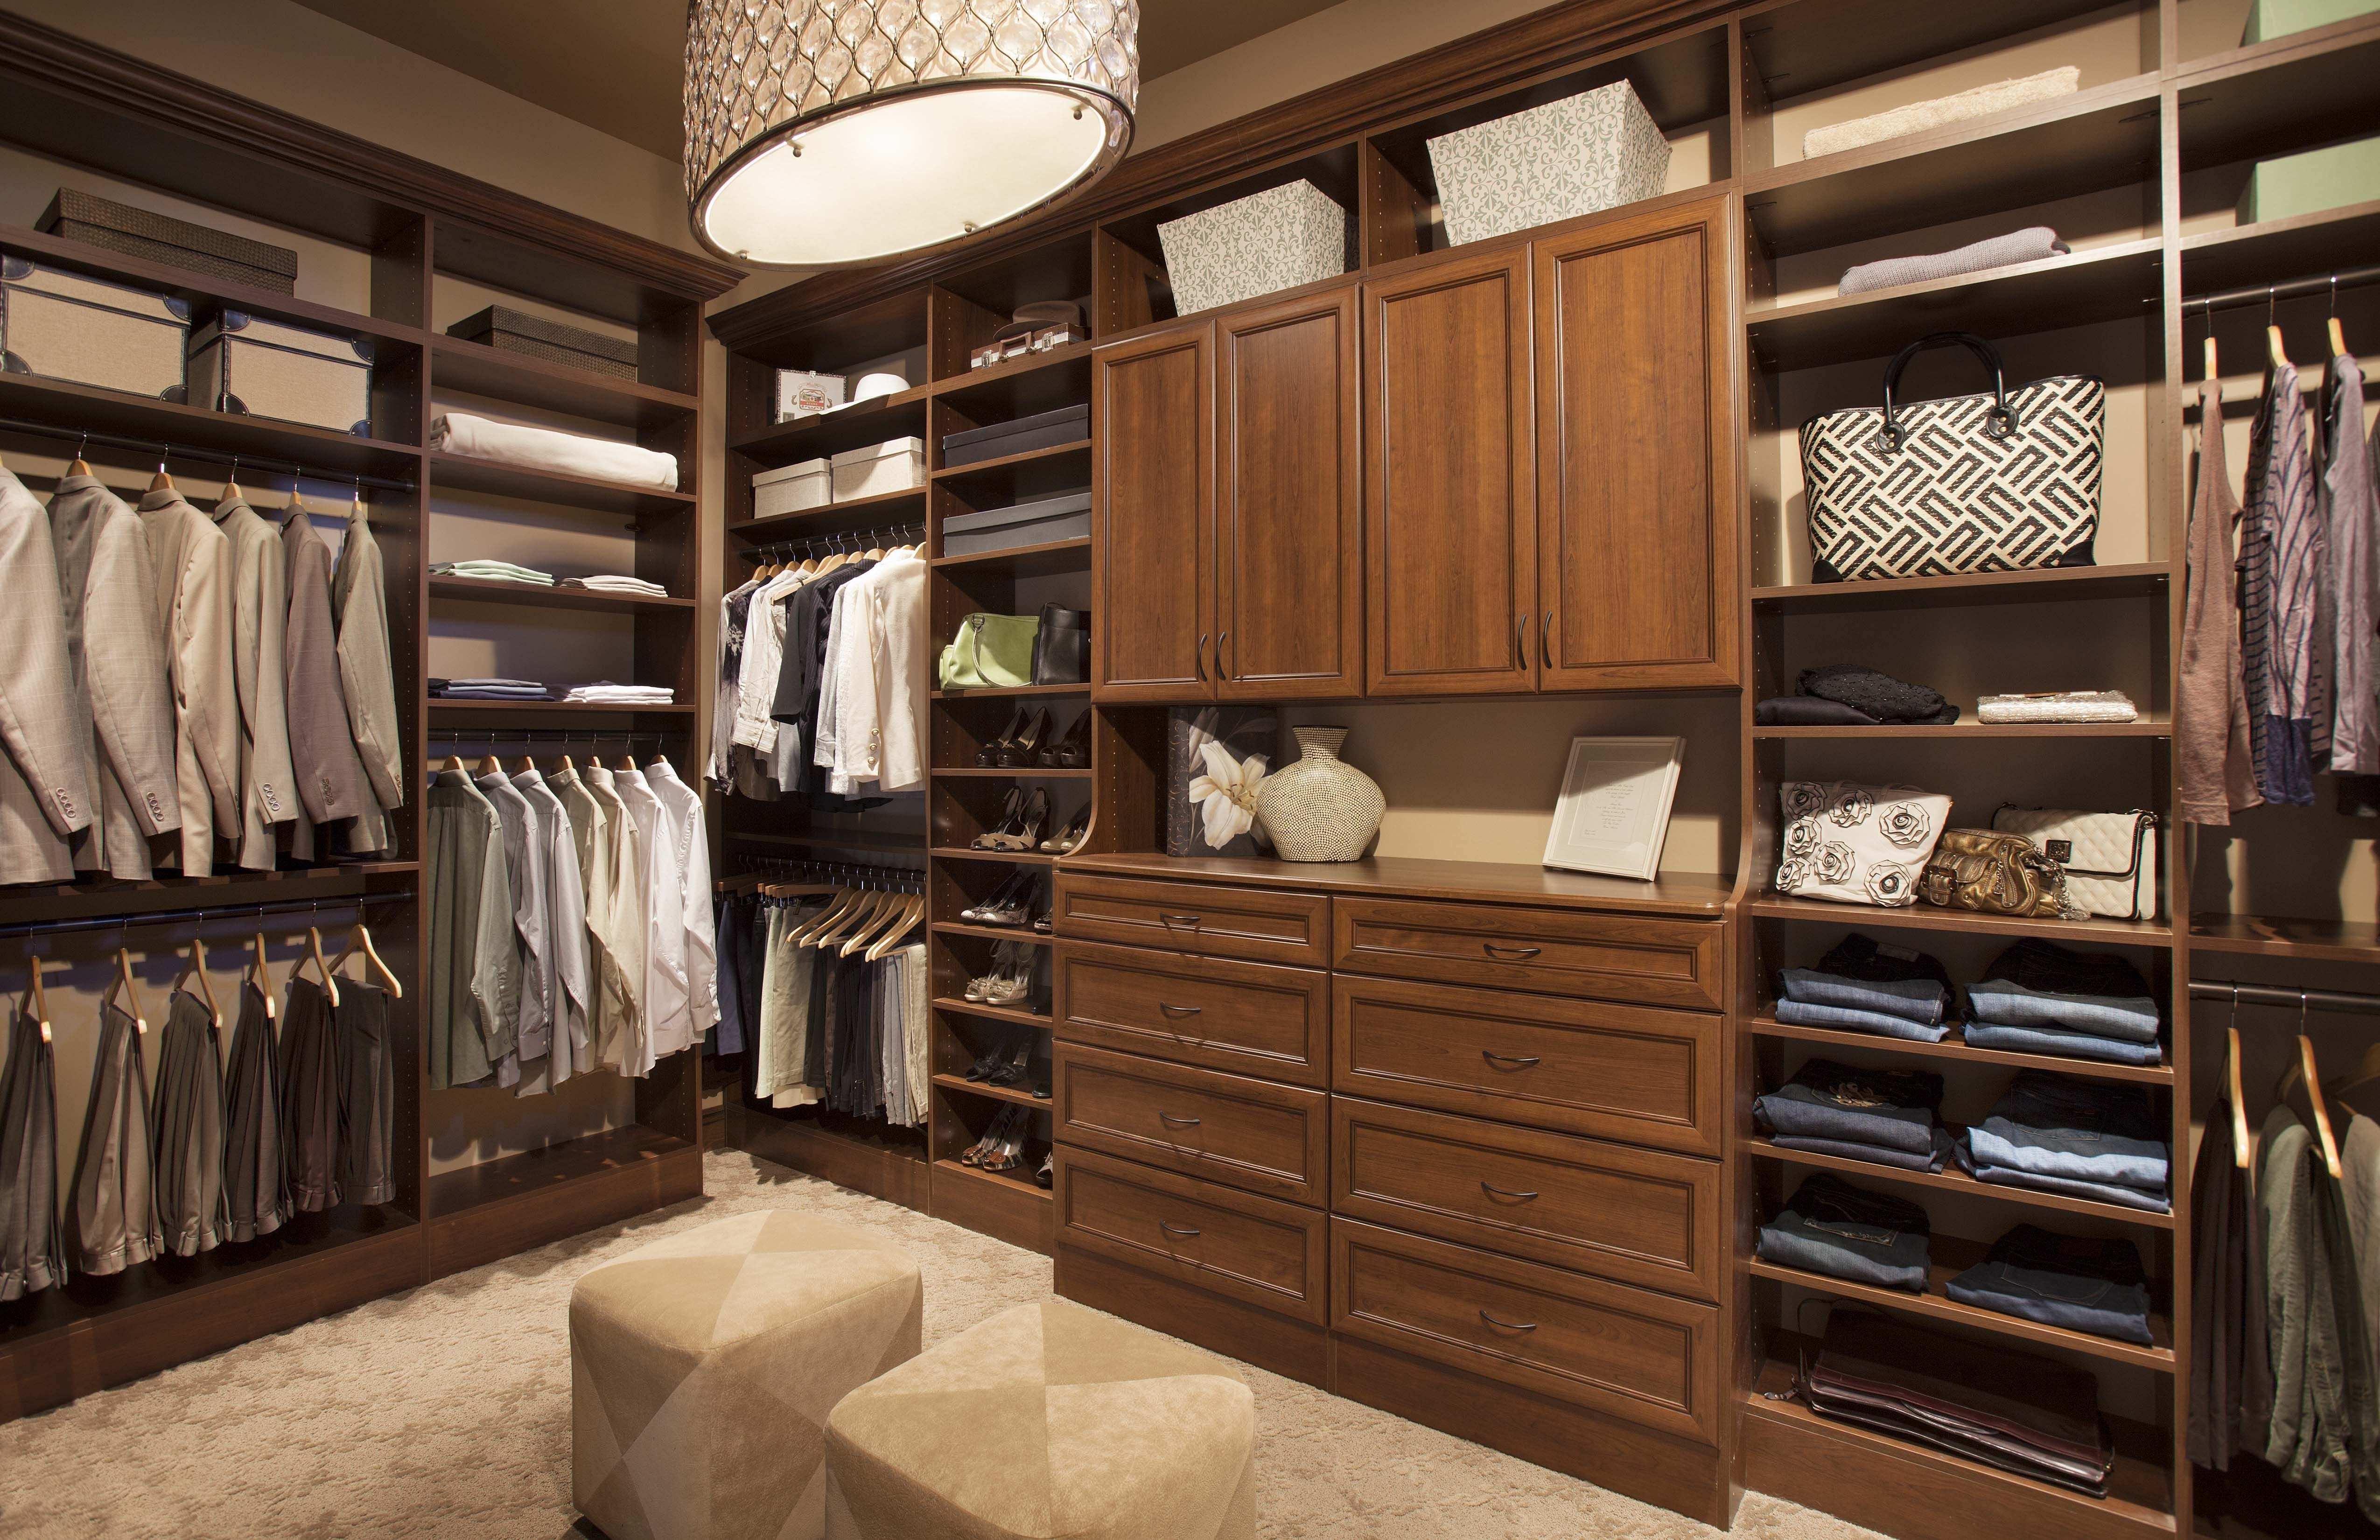 Good Designing And Organizing Custom Closets U0026 Closet Systems Into A Beautiful  And Functional Space. Request